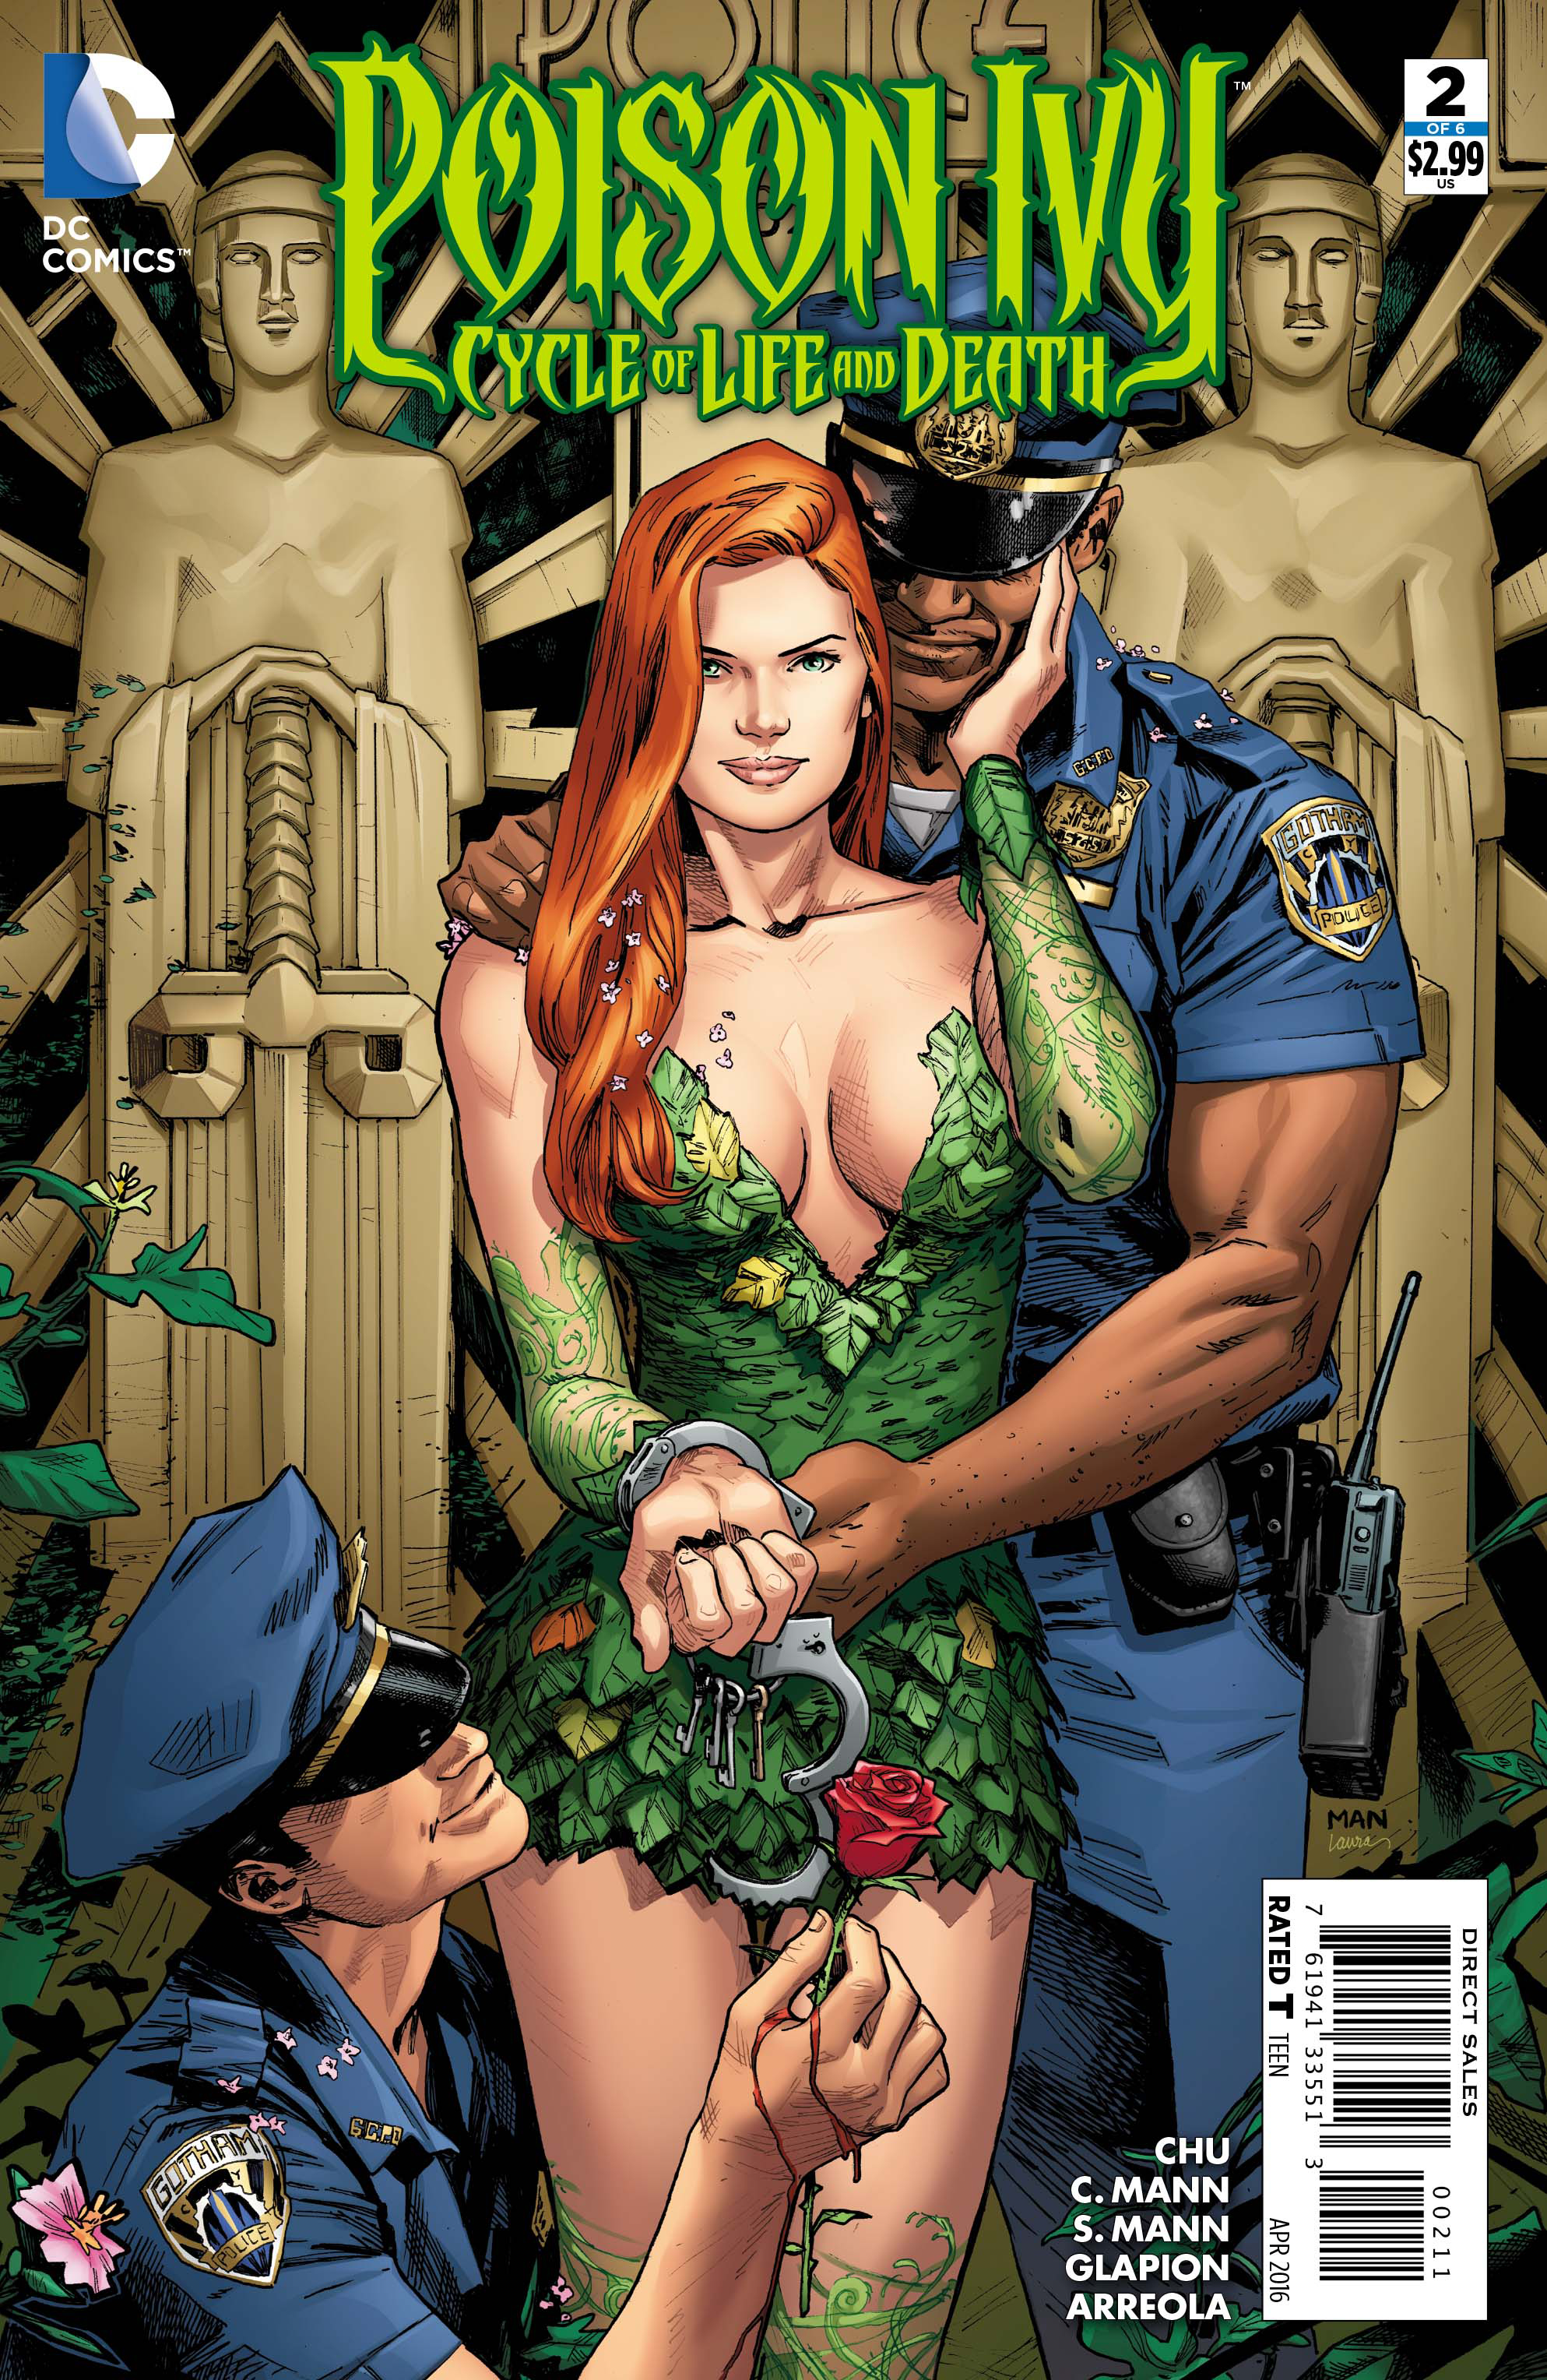 POISON IVY CYCLE OF LIFE AND DEATH #2